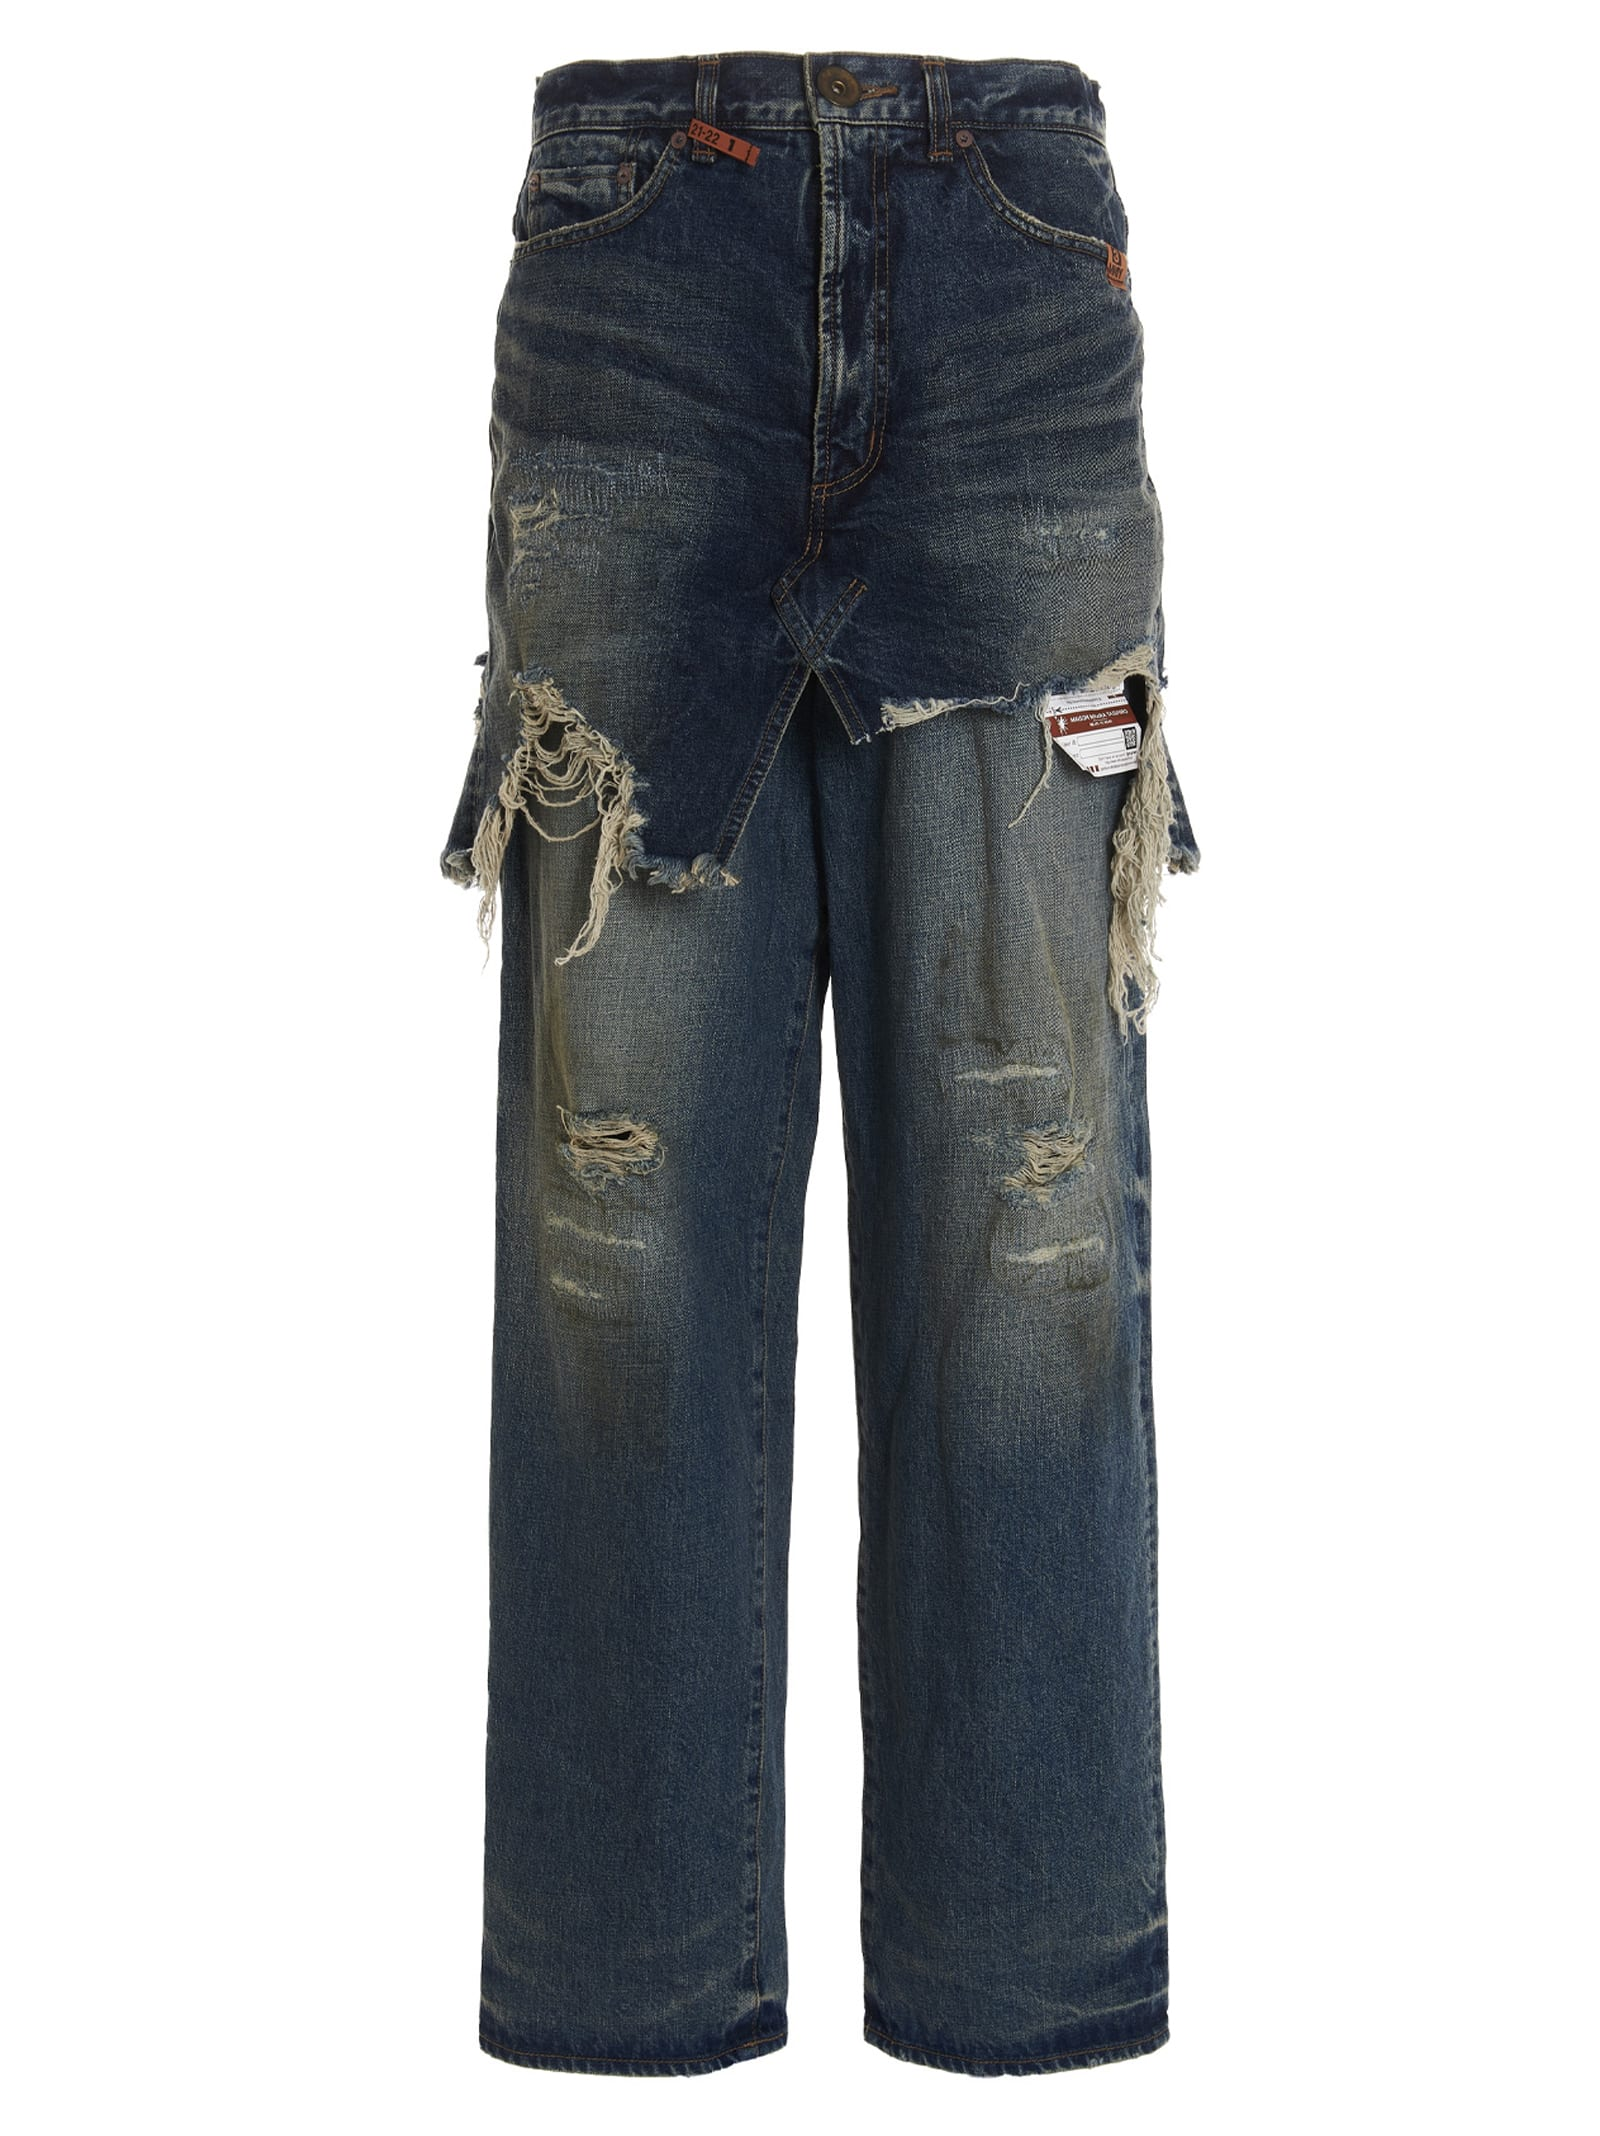 layered Jeans